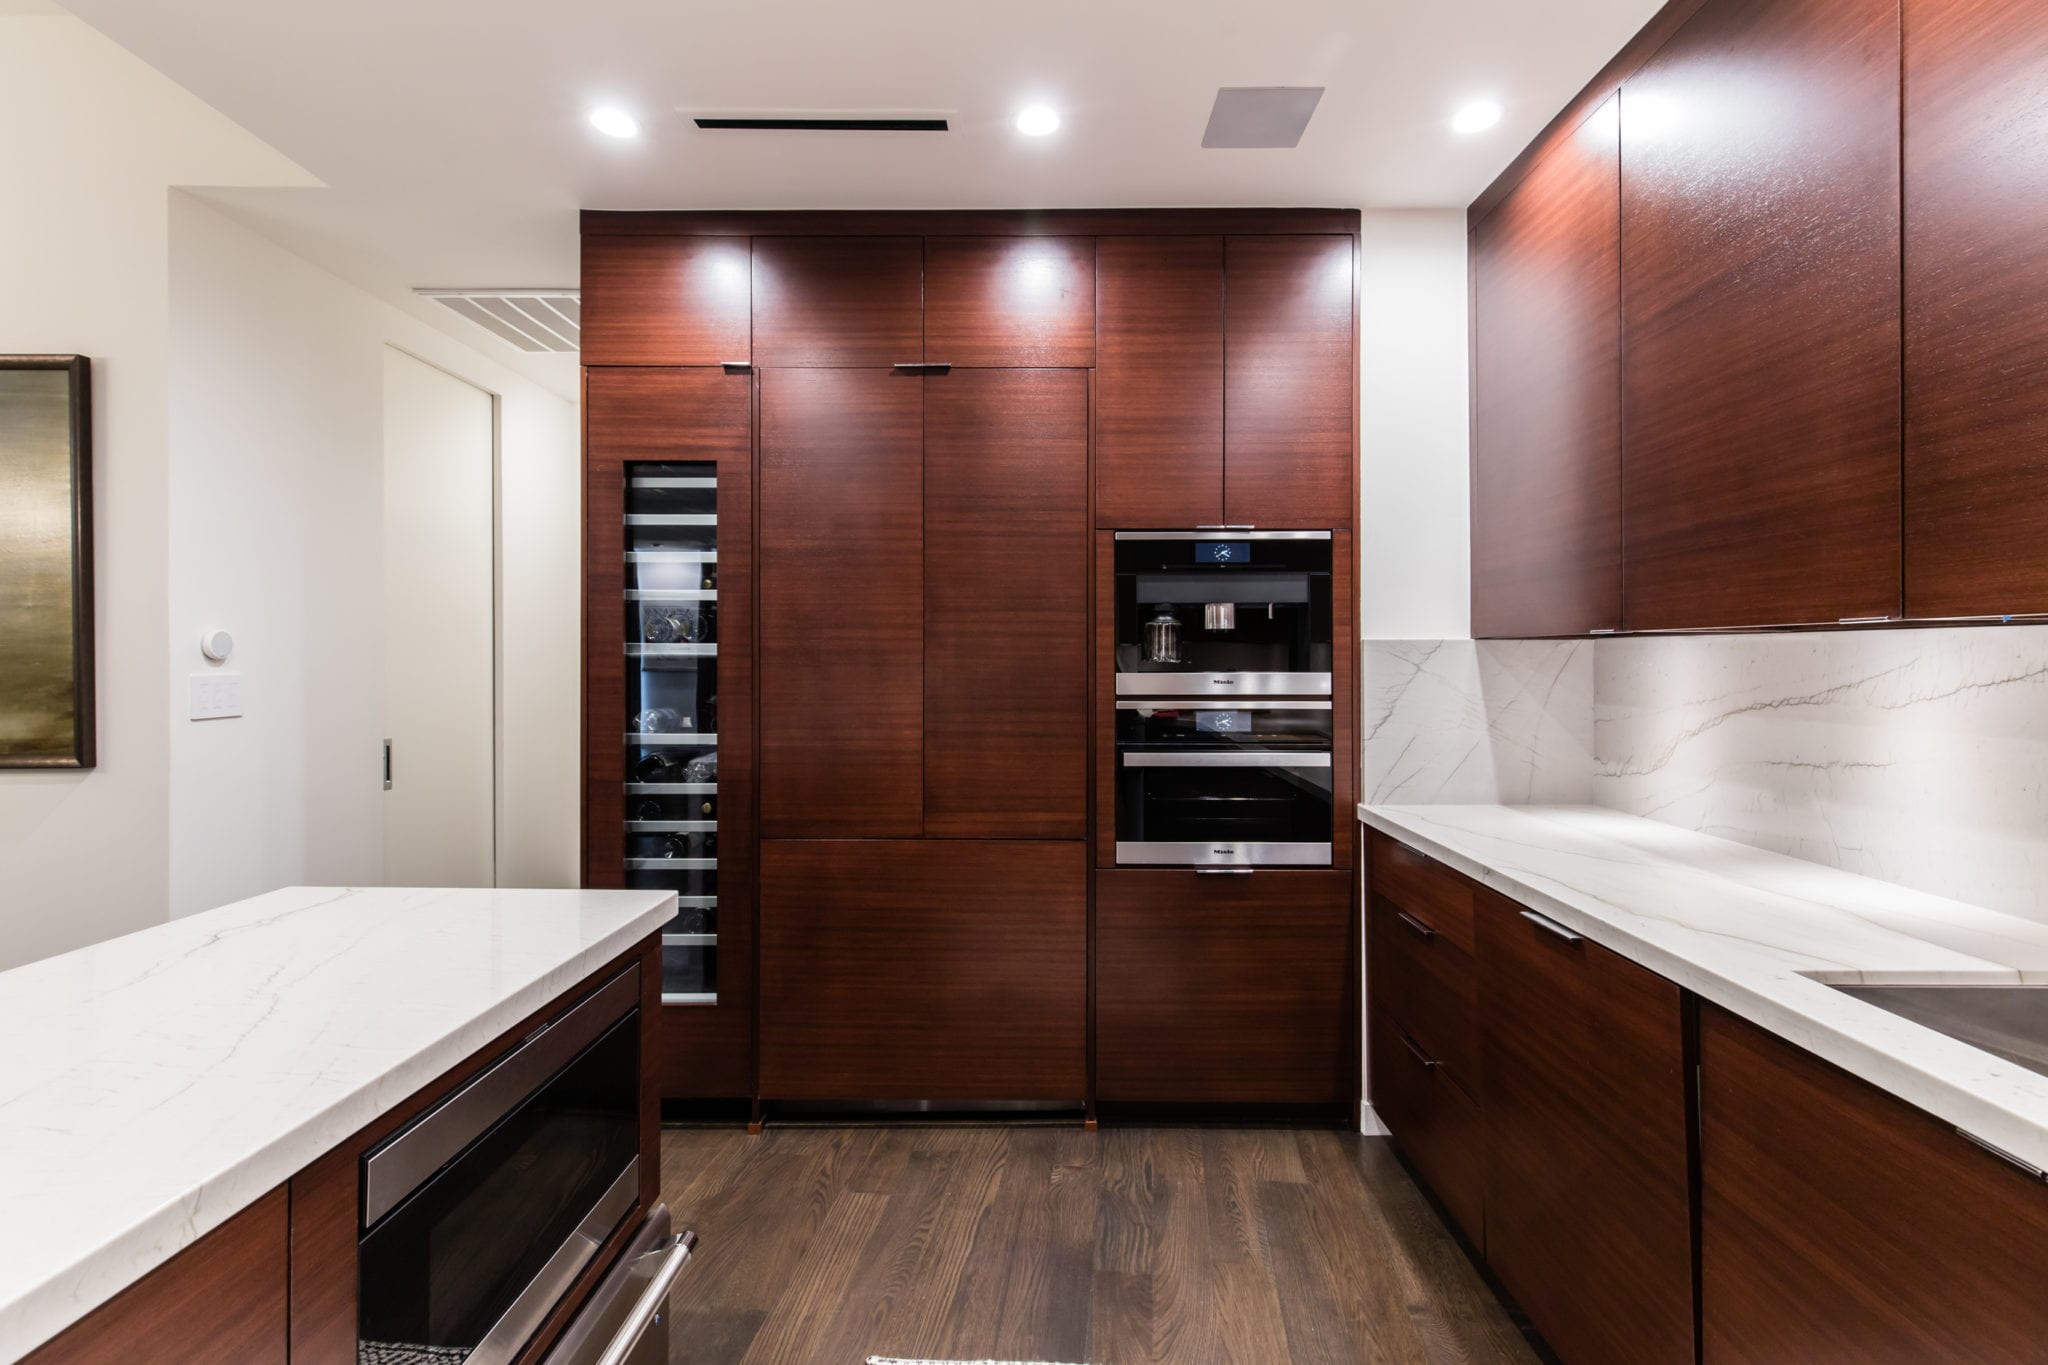 Kitchen-2-story-high-rise-condo-remodel-The-Travis-Katy-Trail-Kitchen-Cabinets-with-panel-ready-refrigerator